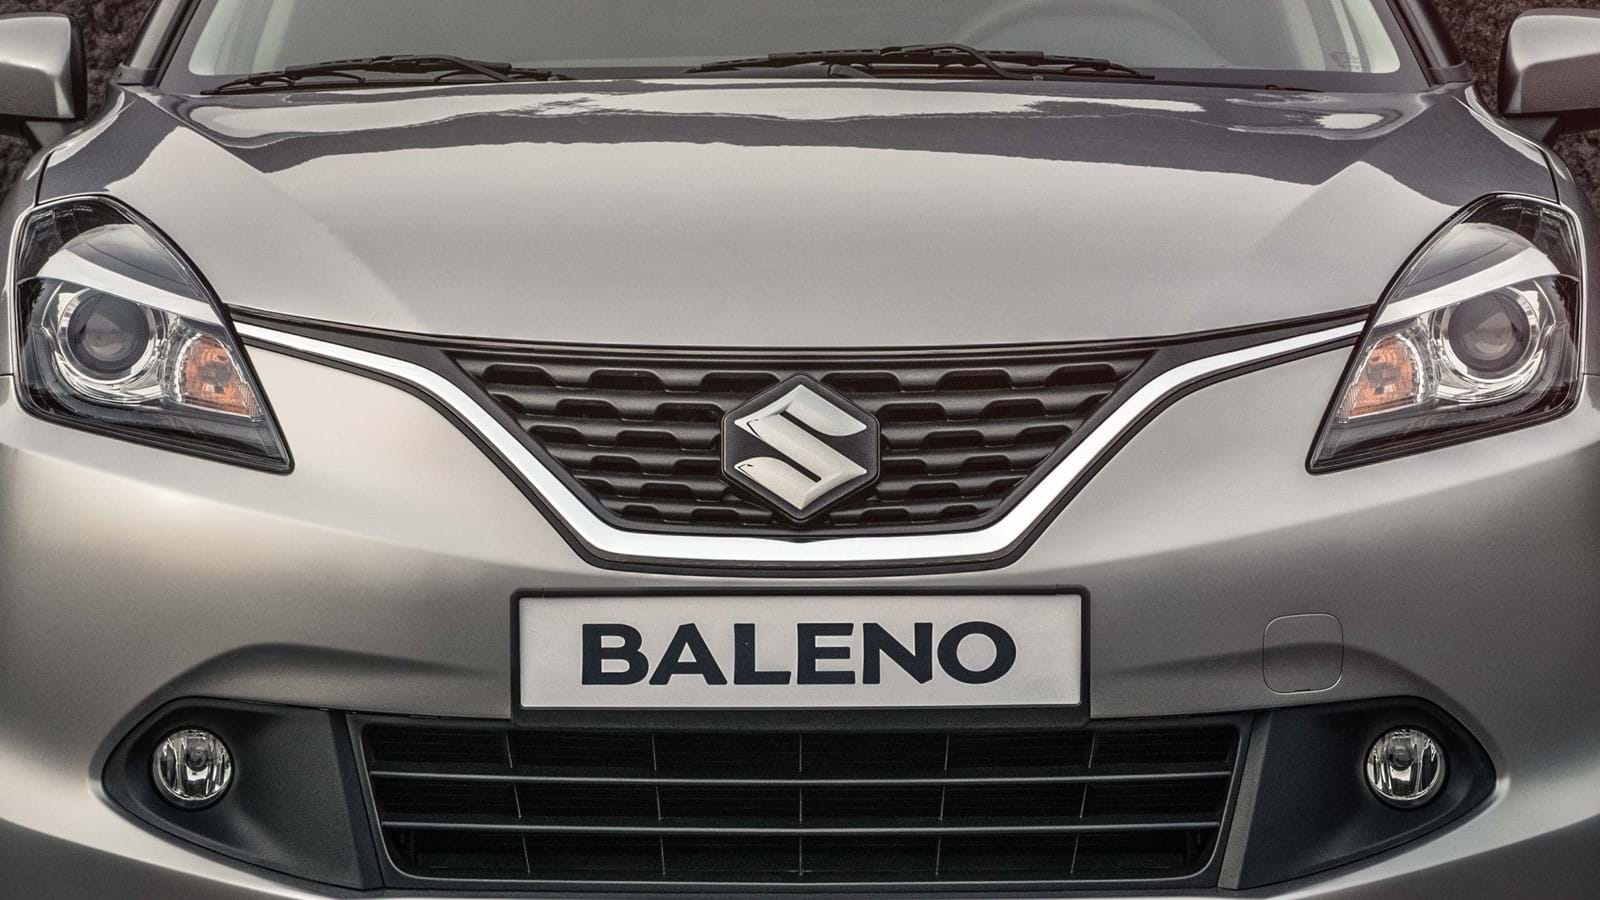 All Types baleno car images : The New Suzuki Baleno | Suzuki Cars UK